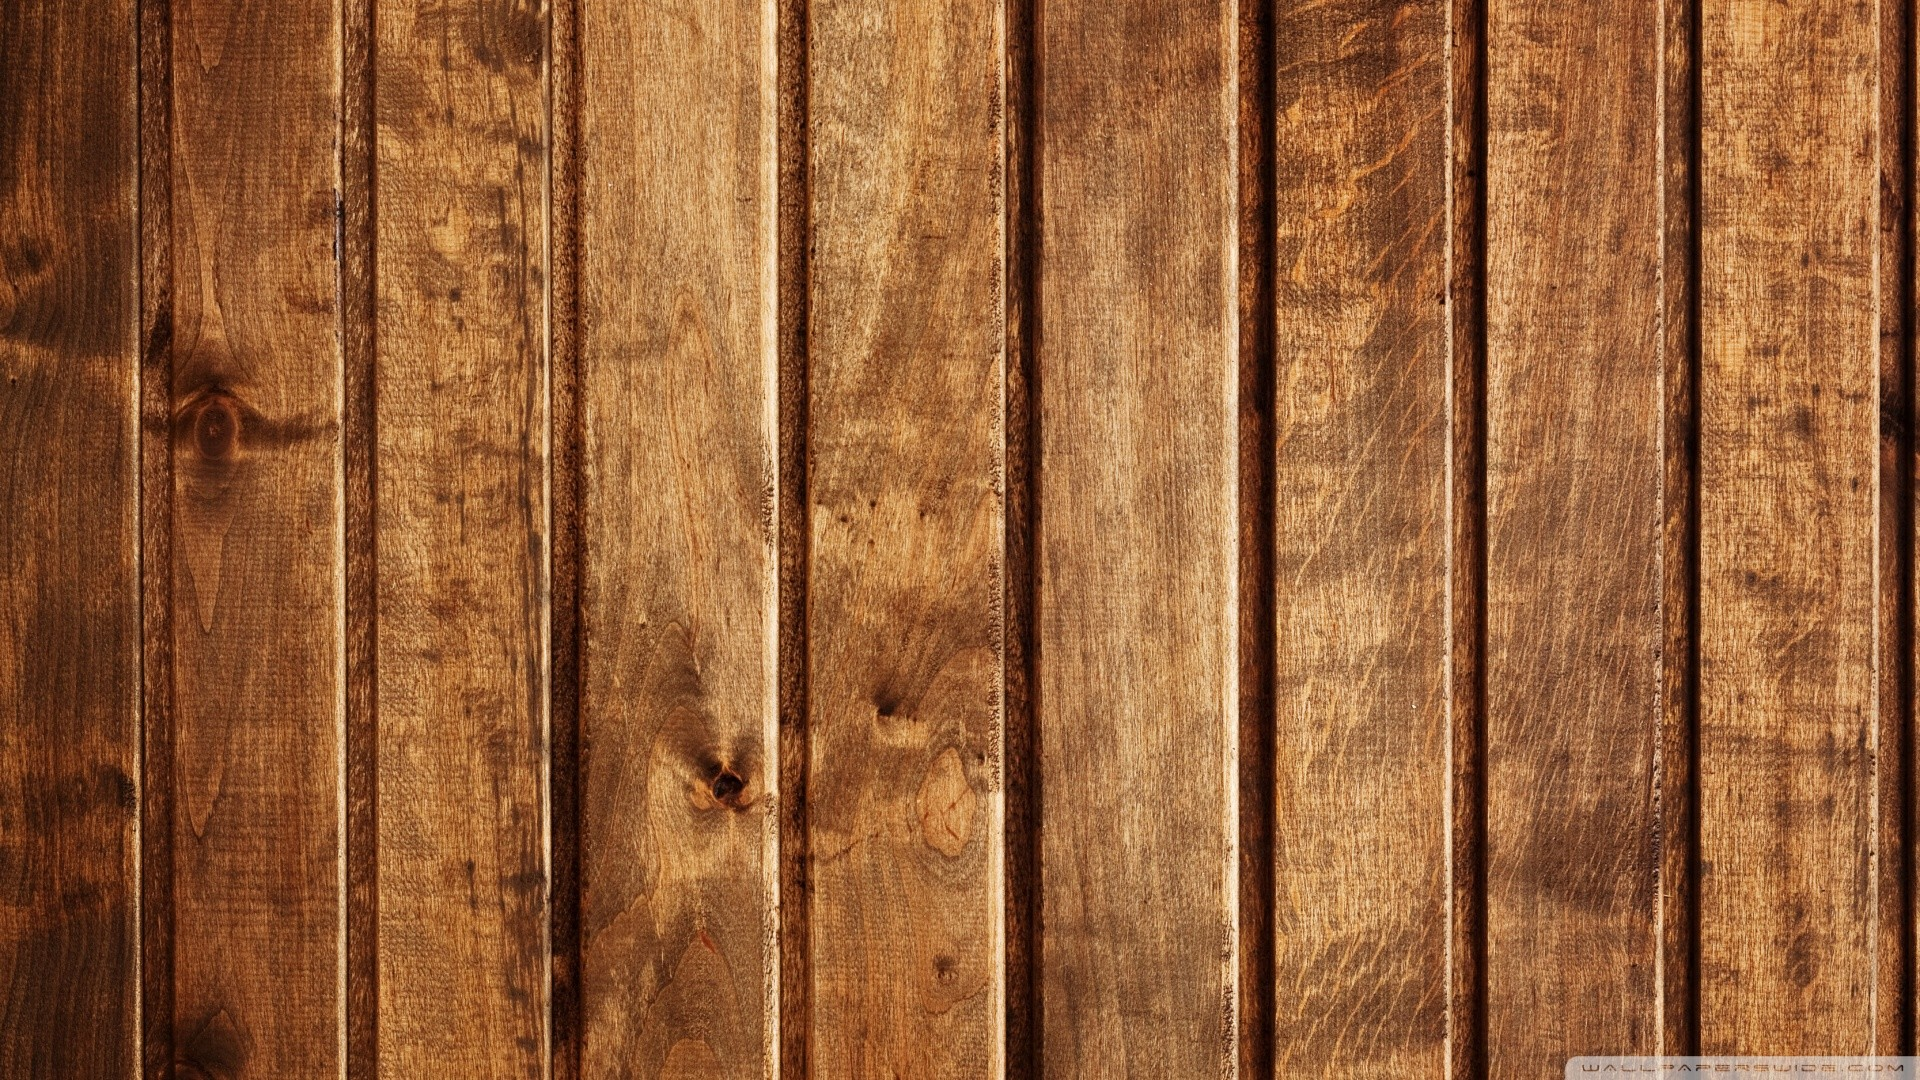 1920x1080 Desktop Wood Wallpaper HD CuteWallpaper.org - HD Wallpapers